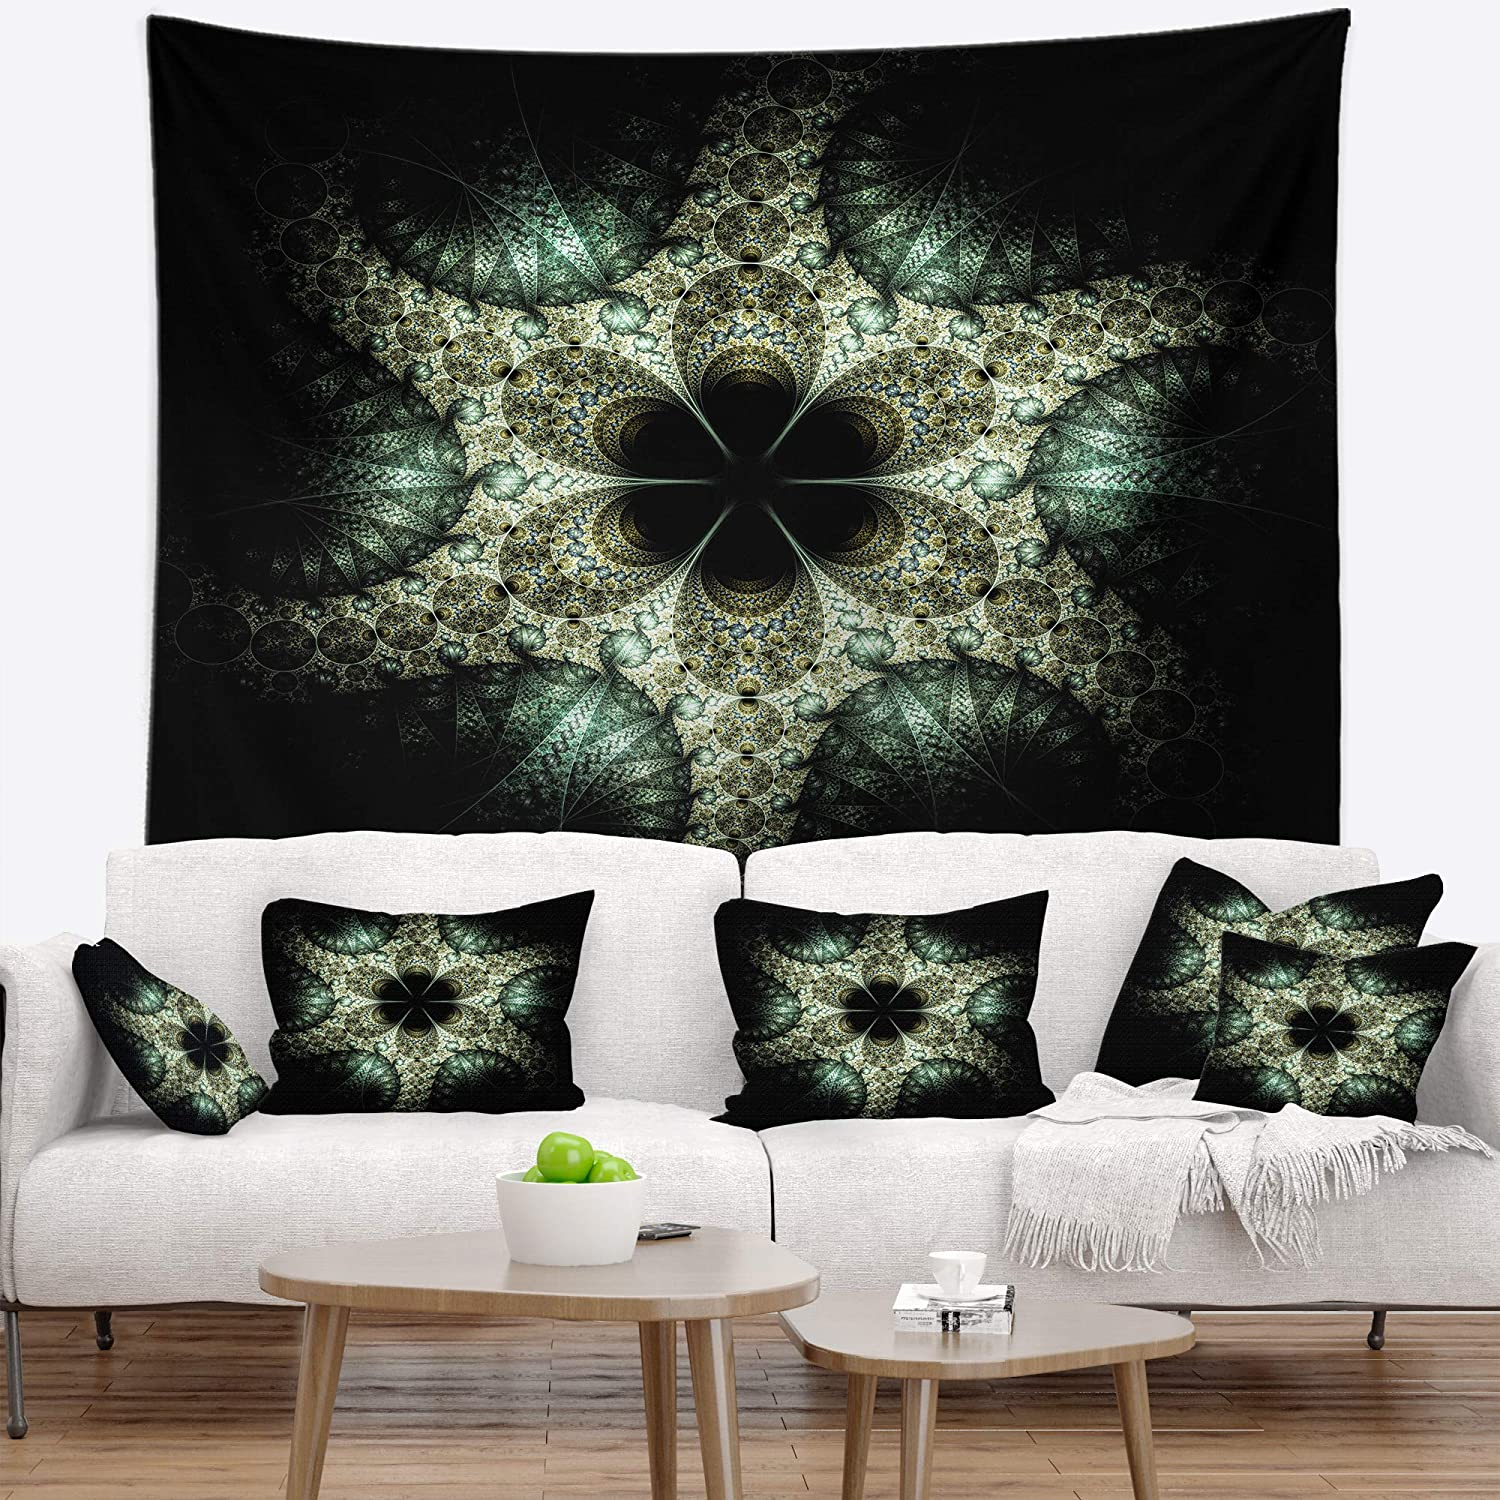 Designart TAP16459-60-50  Yellow and Green Fractal Flower Abstract Blanket D/écor Art for Home and Office Wall Tapestry Large 60 in x 50 in Created On Lightweight Polyester Fabric